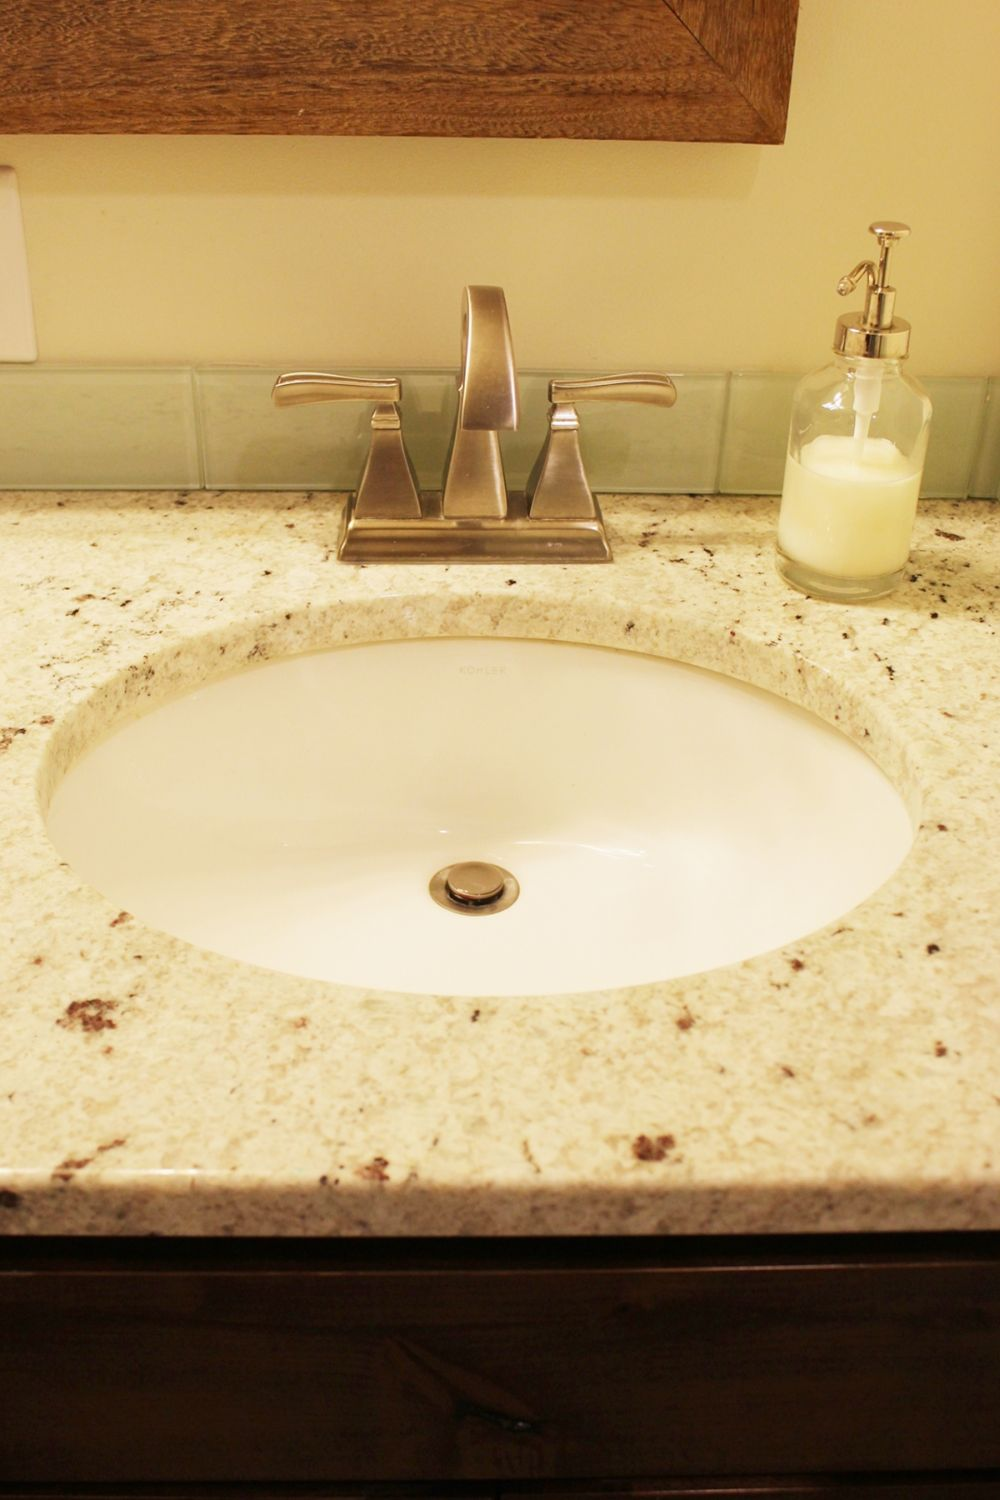 Bathroom Sink Yellow how to decorate a bathroom without clutter